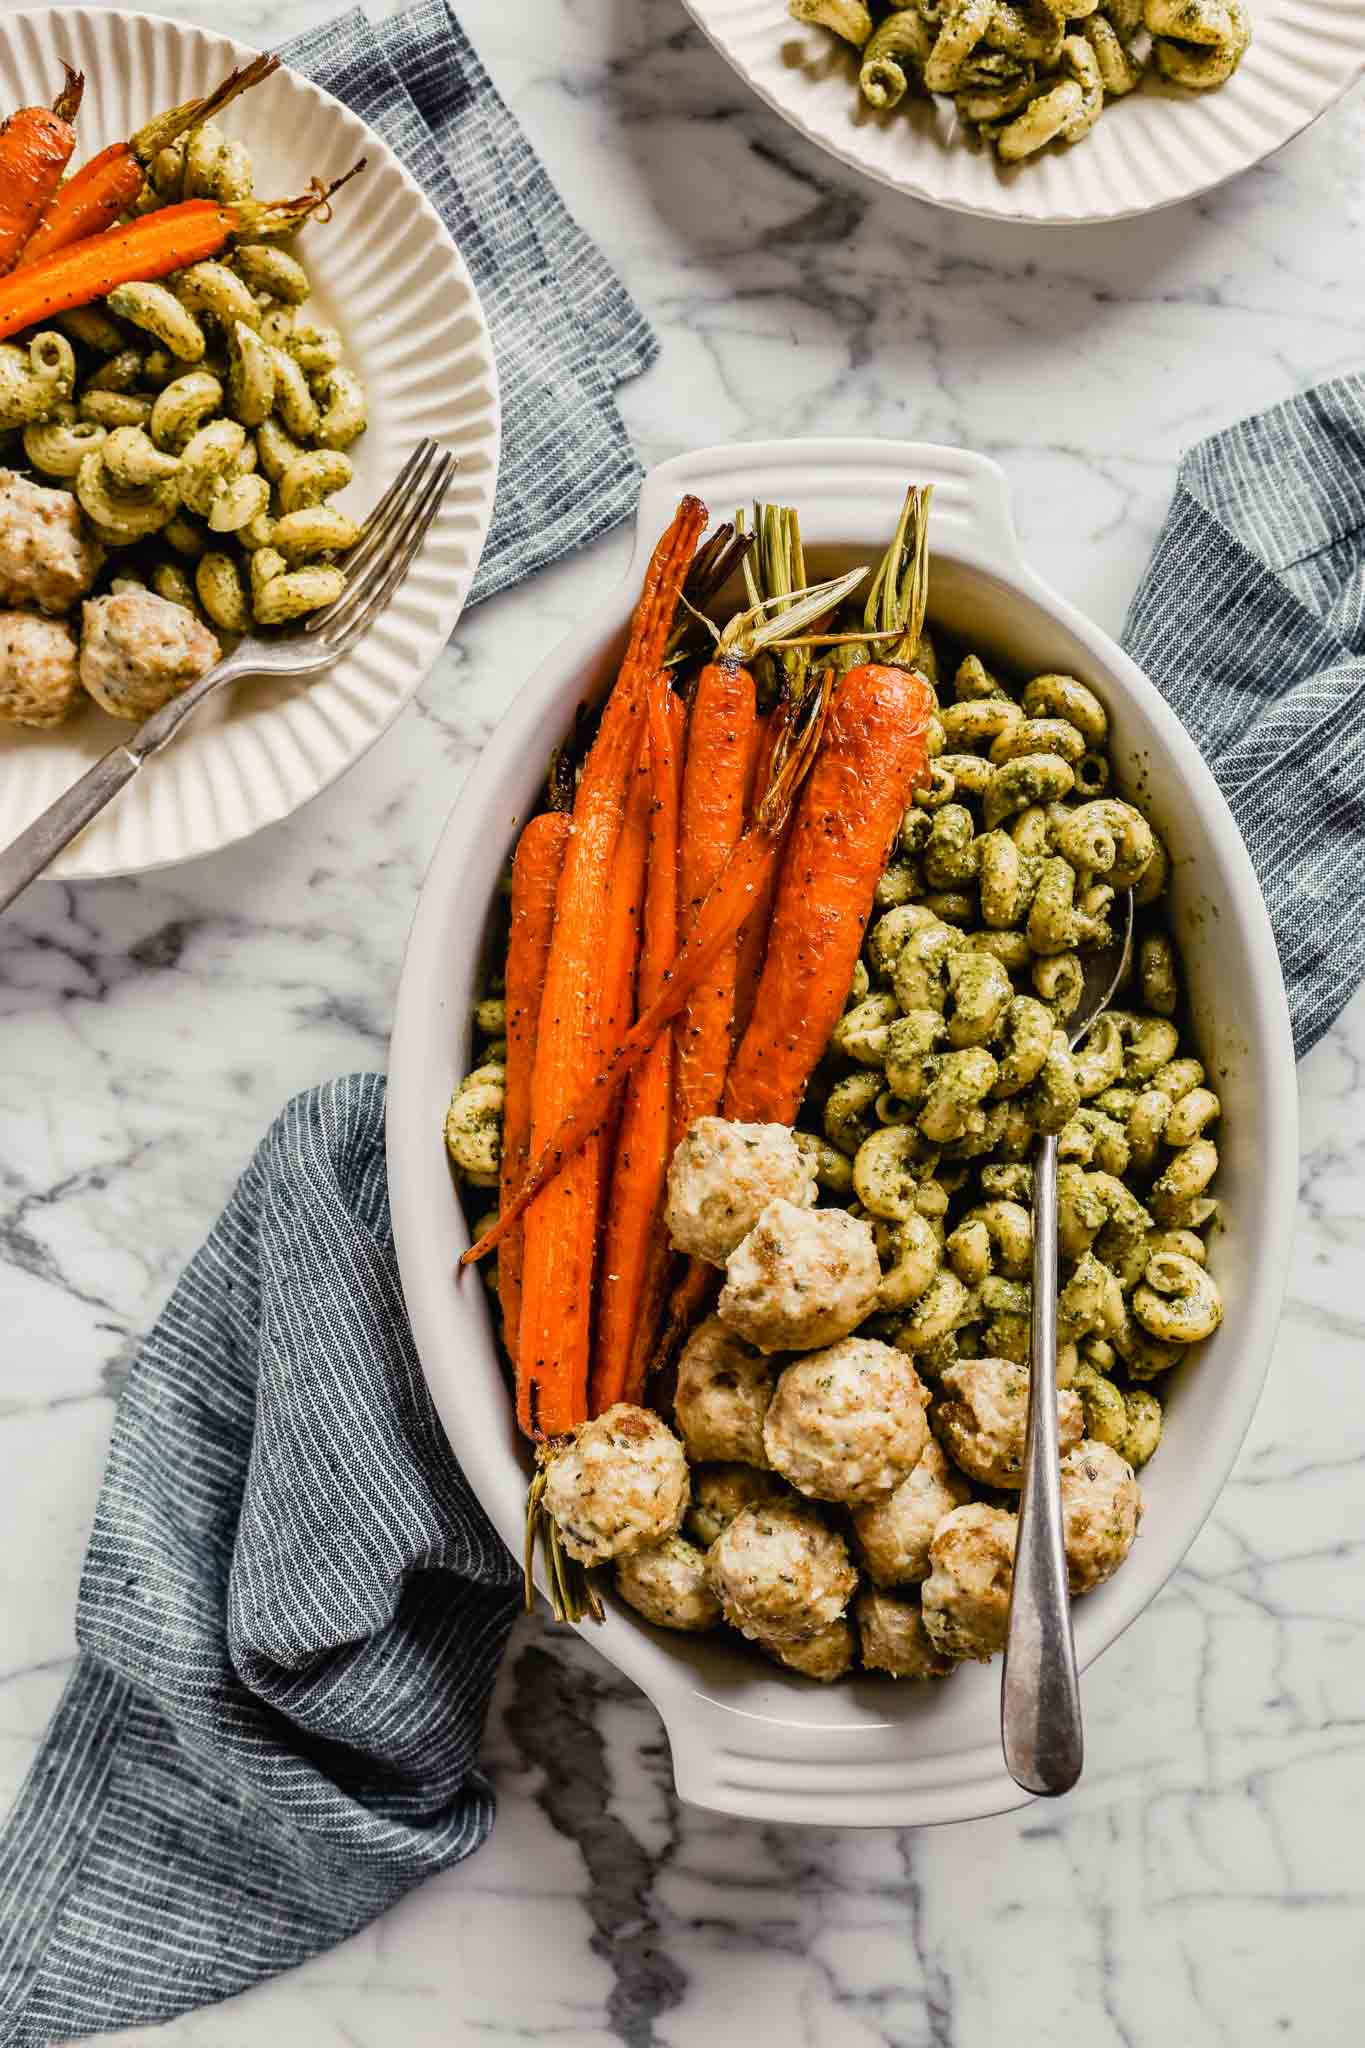 Photograph of a large serving dish filled with pesto pasta, chicken meatballs and roasted carrots